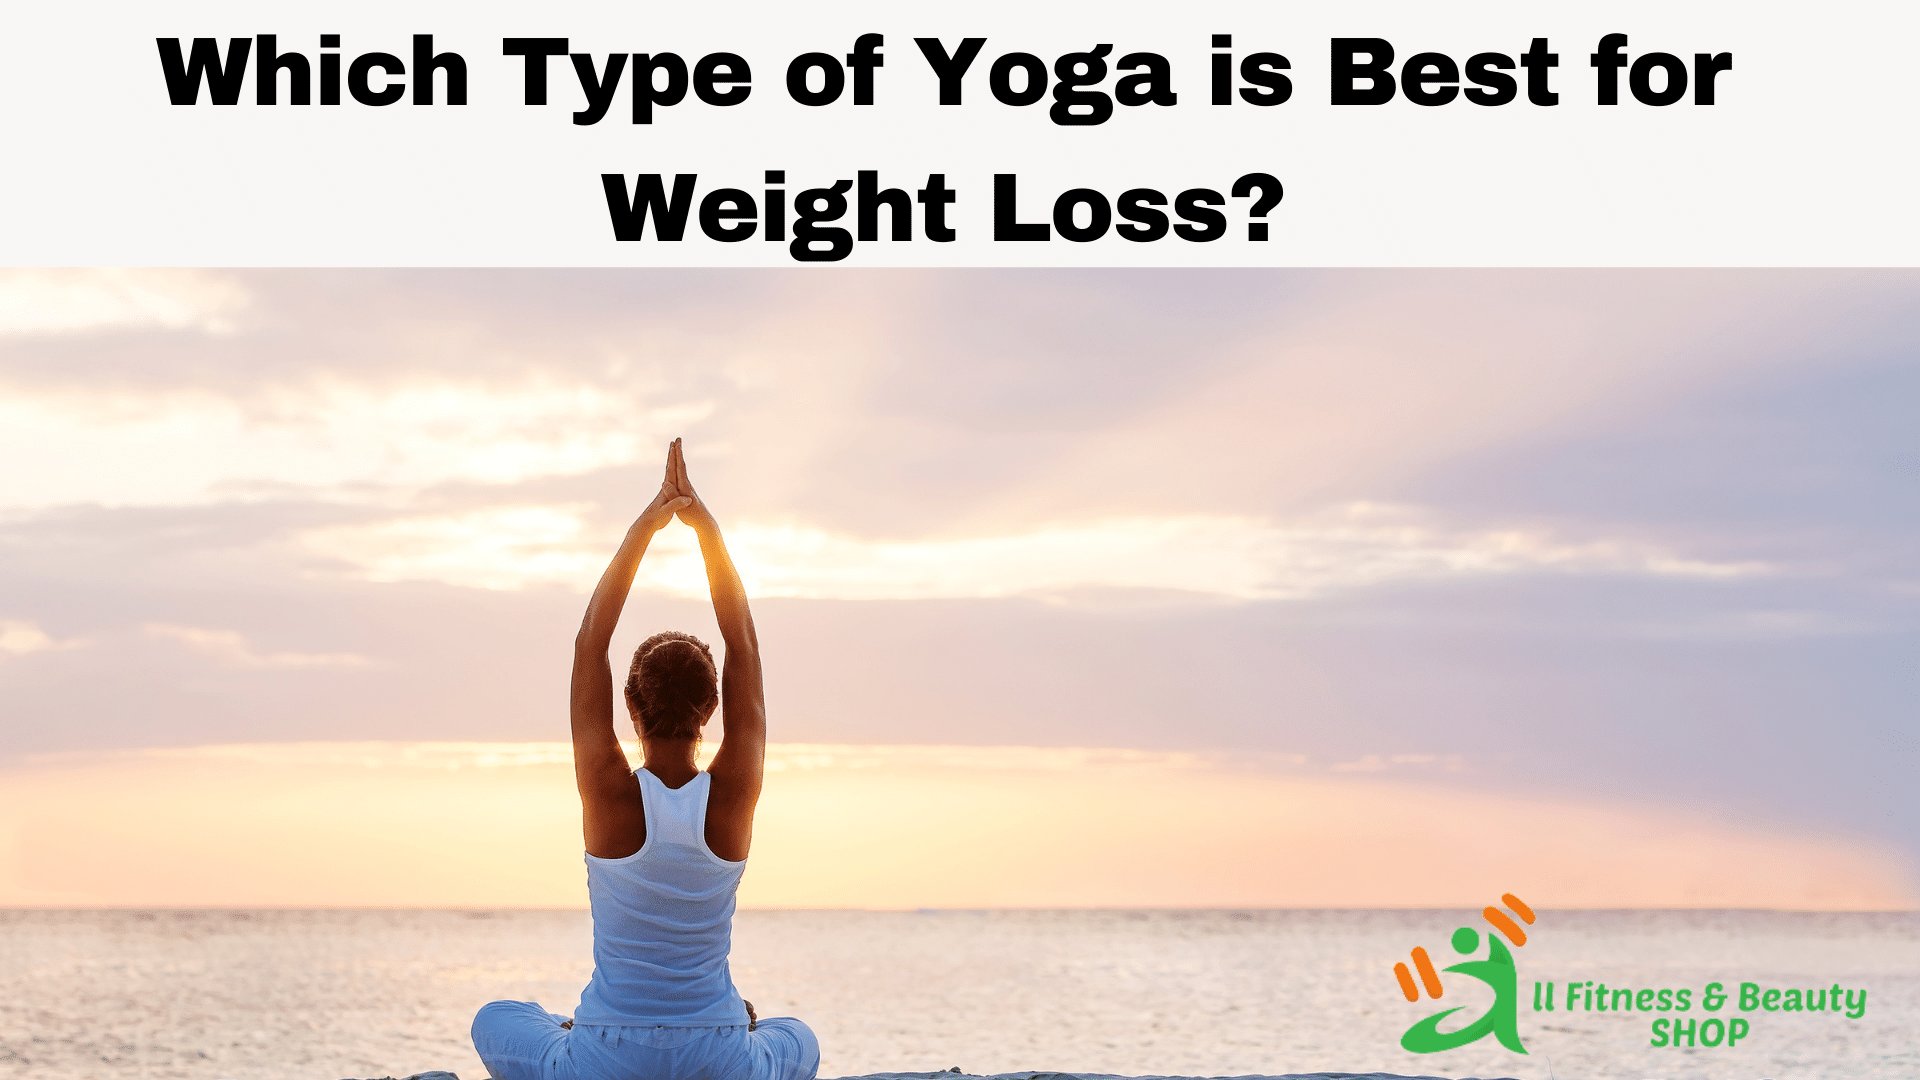 which type of yoga is best for weight loss